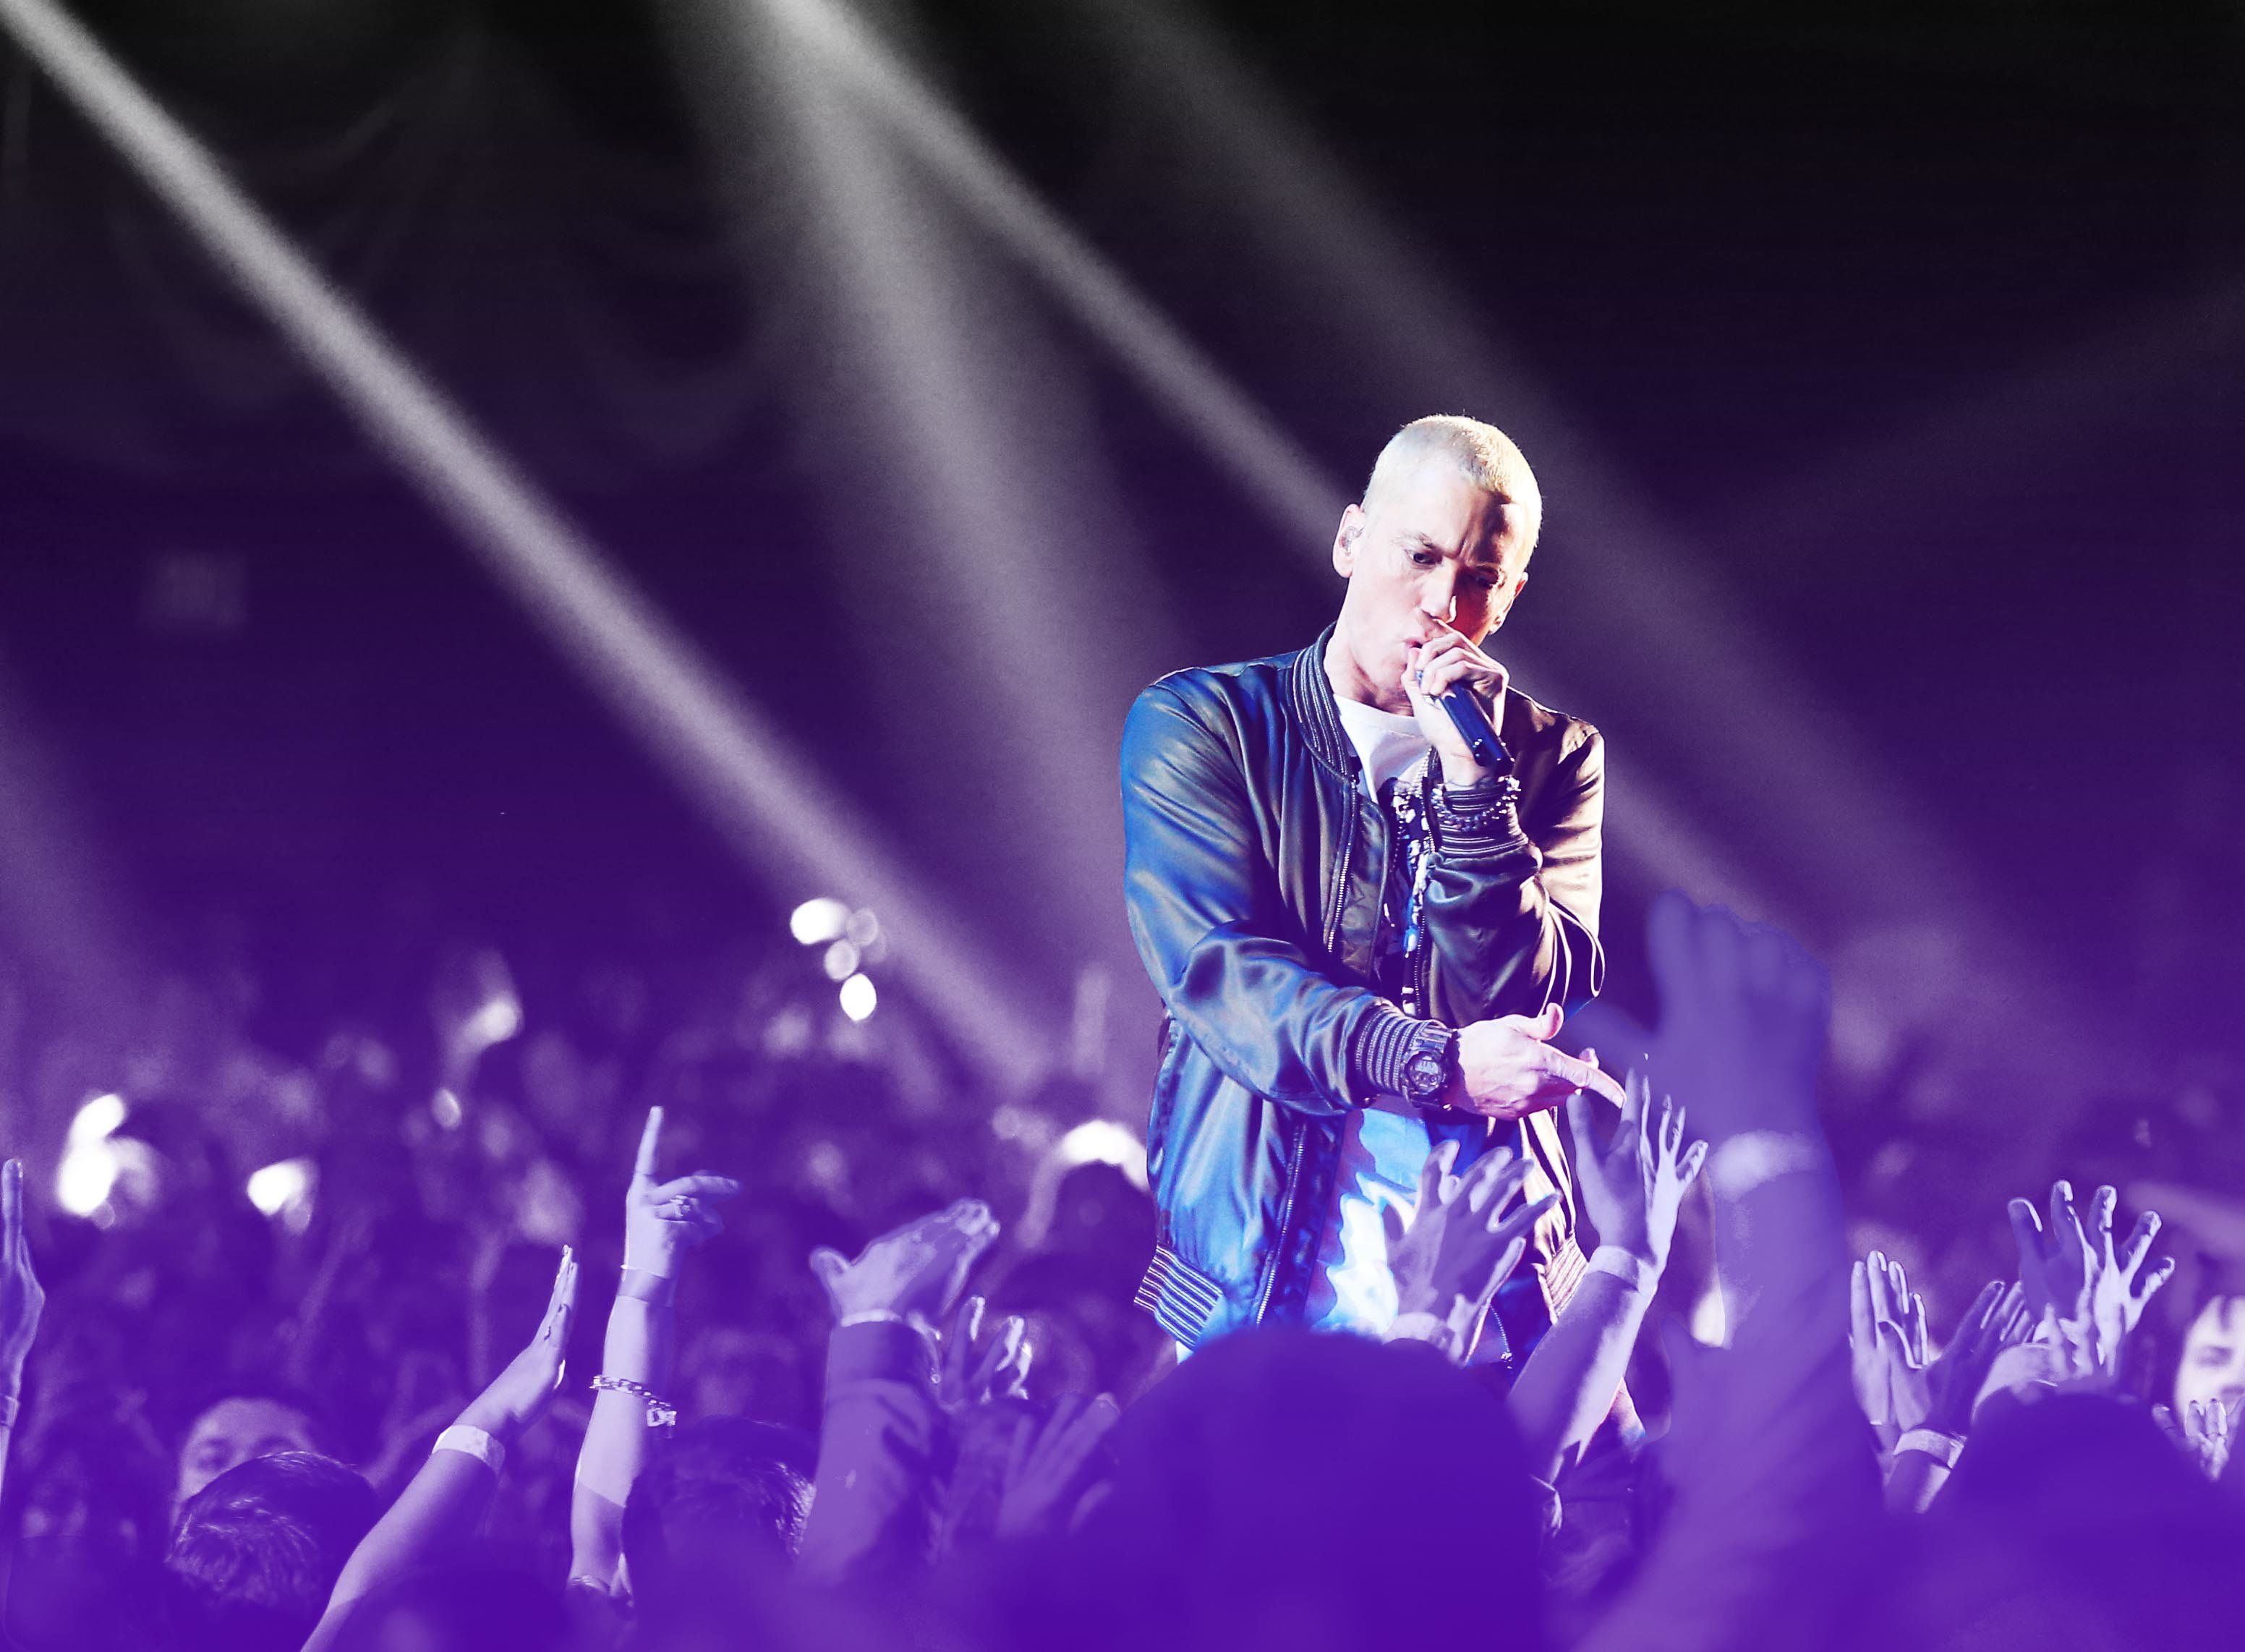 LOS ANGELES, CA - APRIL 13:  Recording artist Eminem performs onstage at the 2014 MTV Movie Awards at Nokia Theatre L.A. Live on April 13, 2014 in Los Angeles, California.  (Photo by Christopher Polk/Getty Images for MTV)